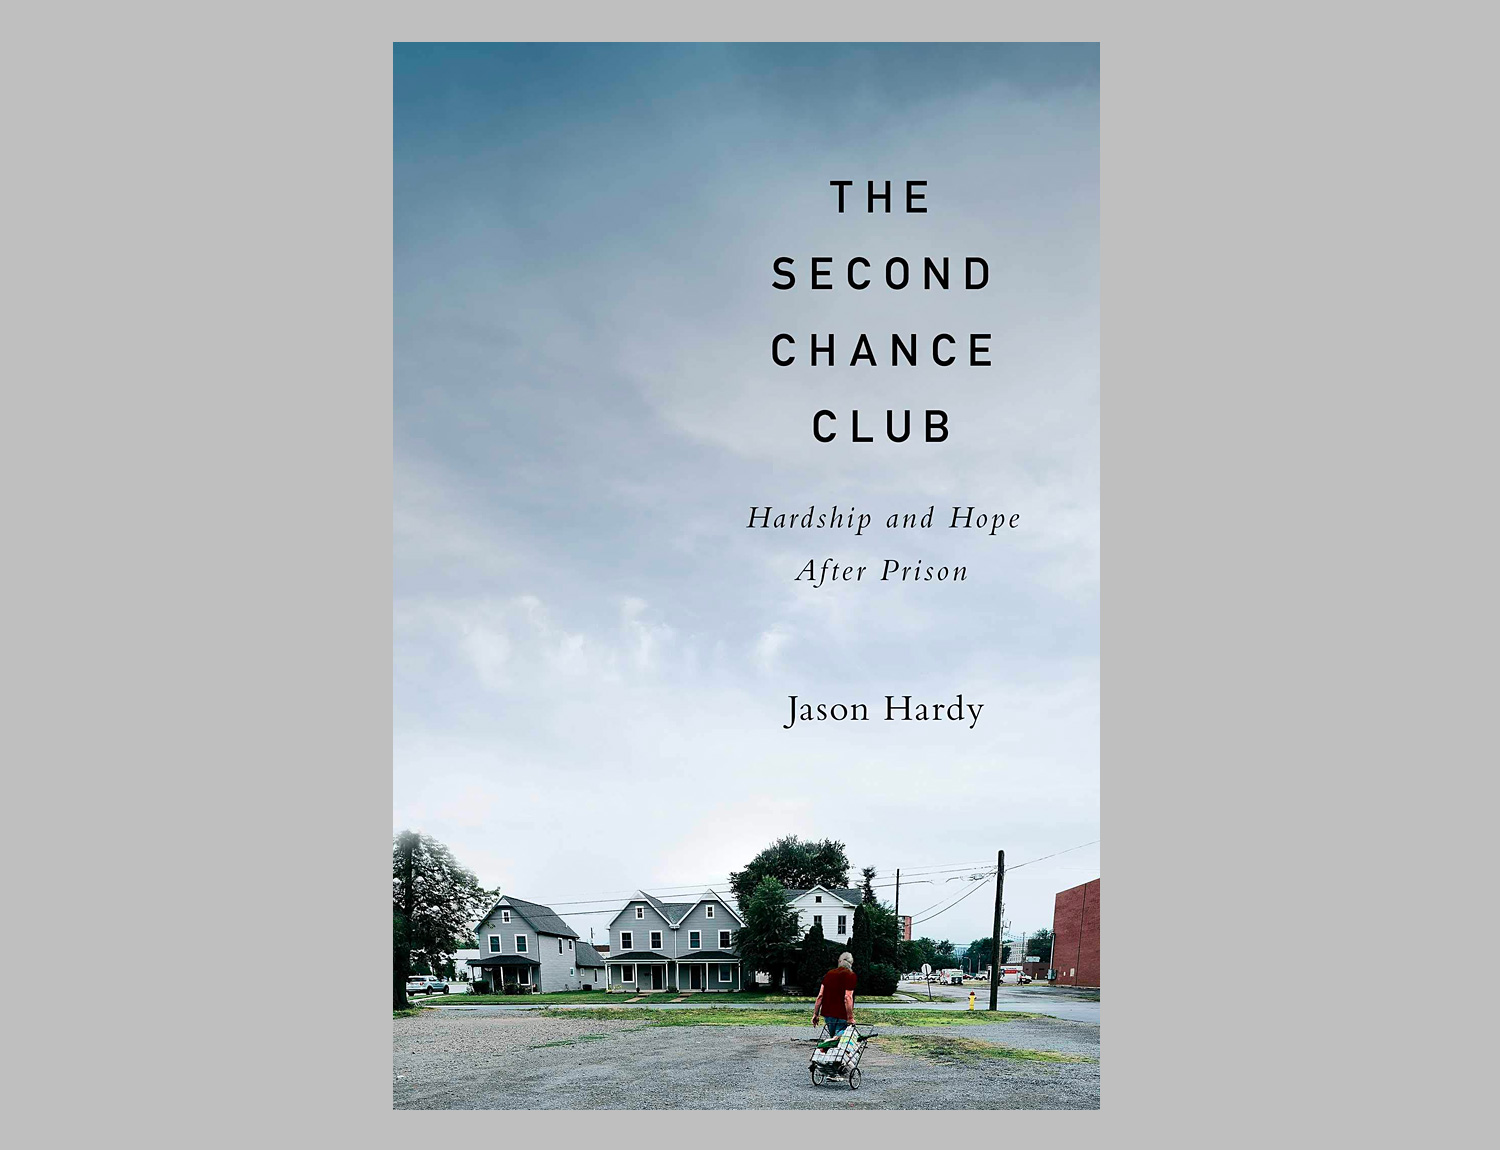 The Second Chance Club: Hardship and Hope After Prison at werd.com